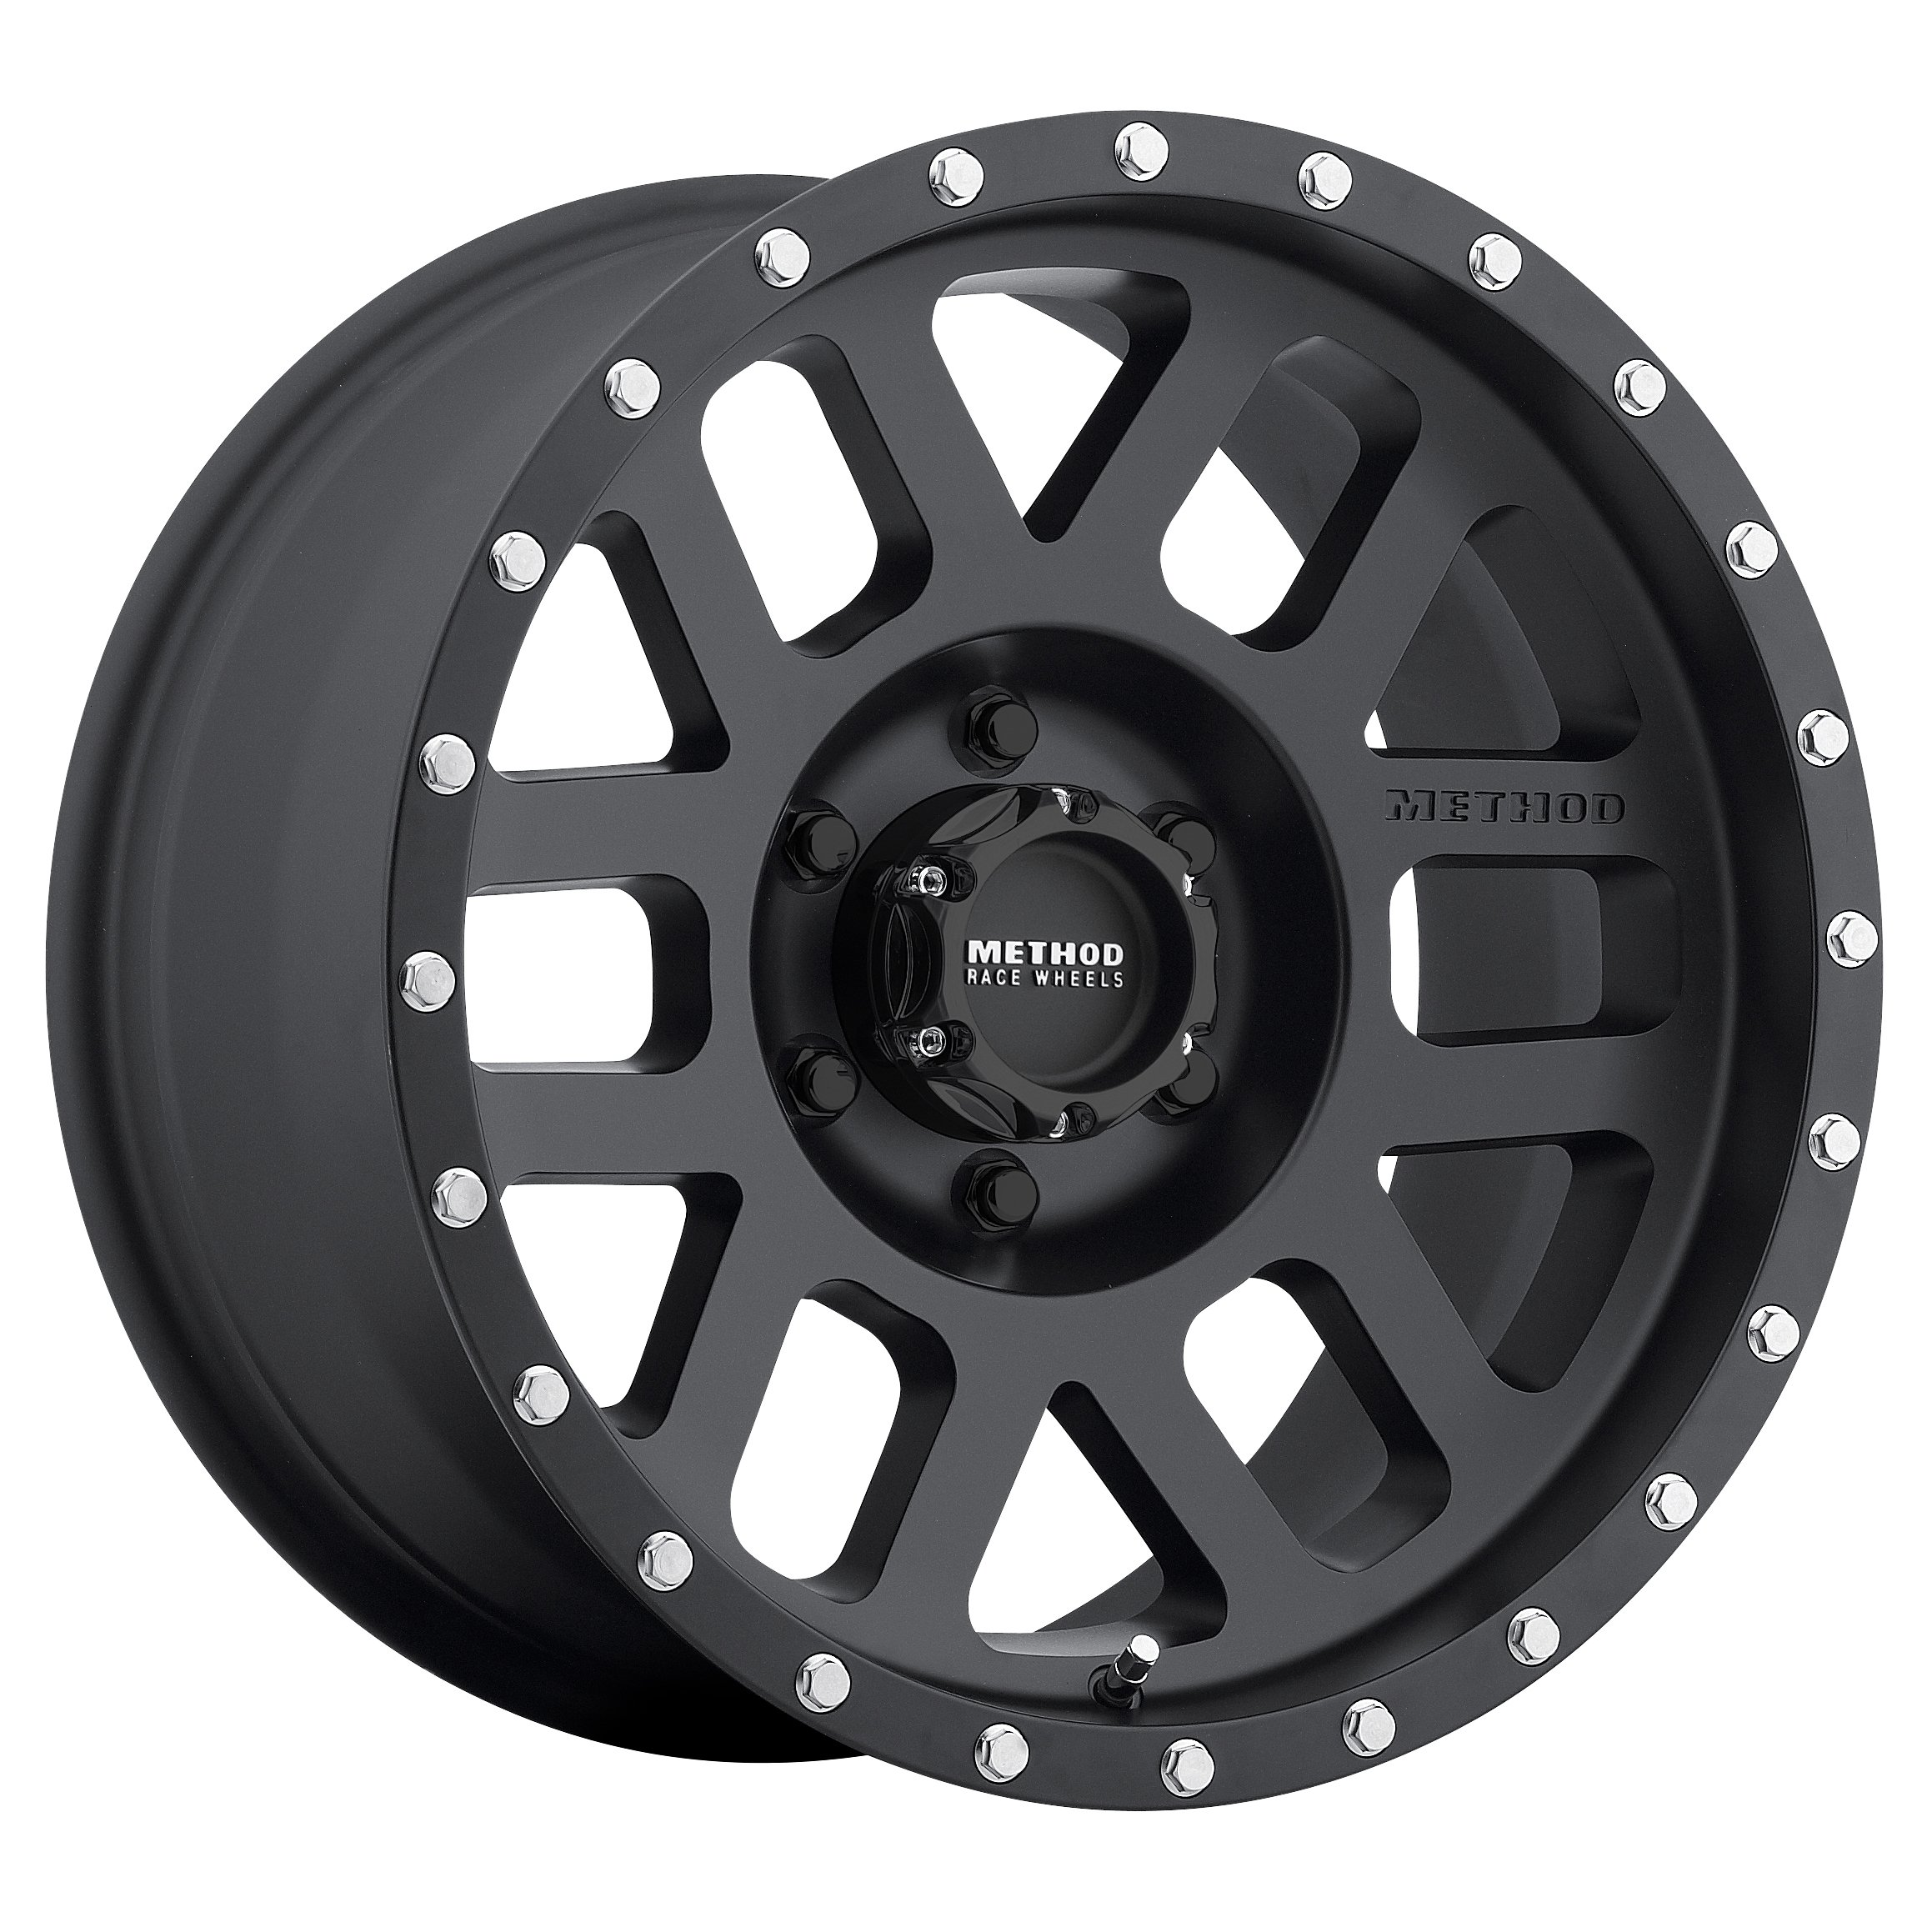 Method Race Wheels Mesh Matte Black Wheel with Stainless Steel Accent Bolts (16x8''/5x4.5'') 0 mm offset